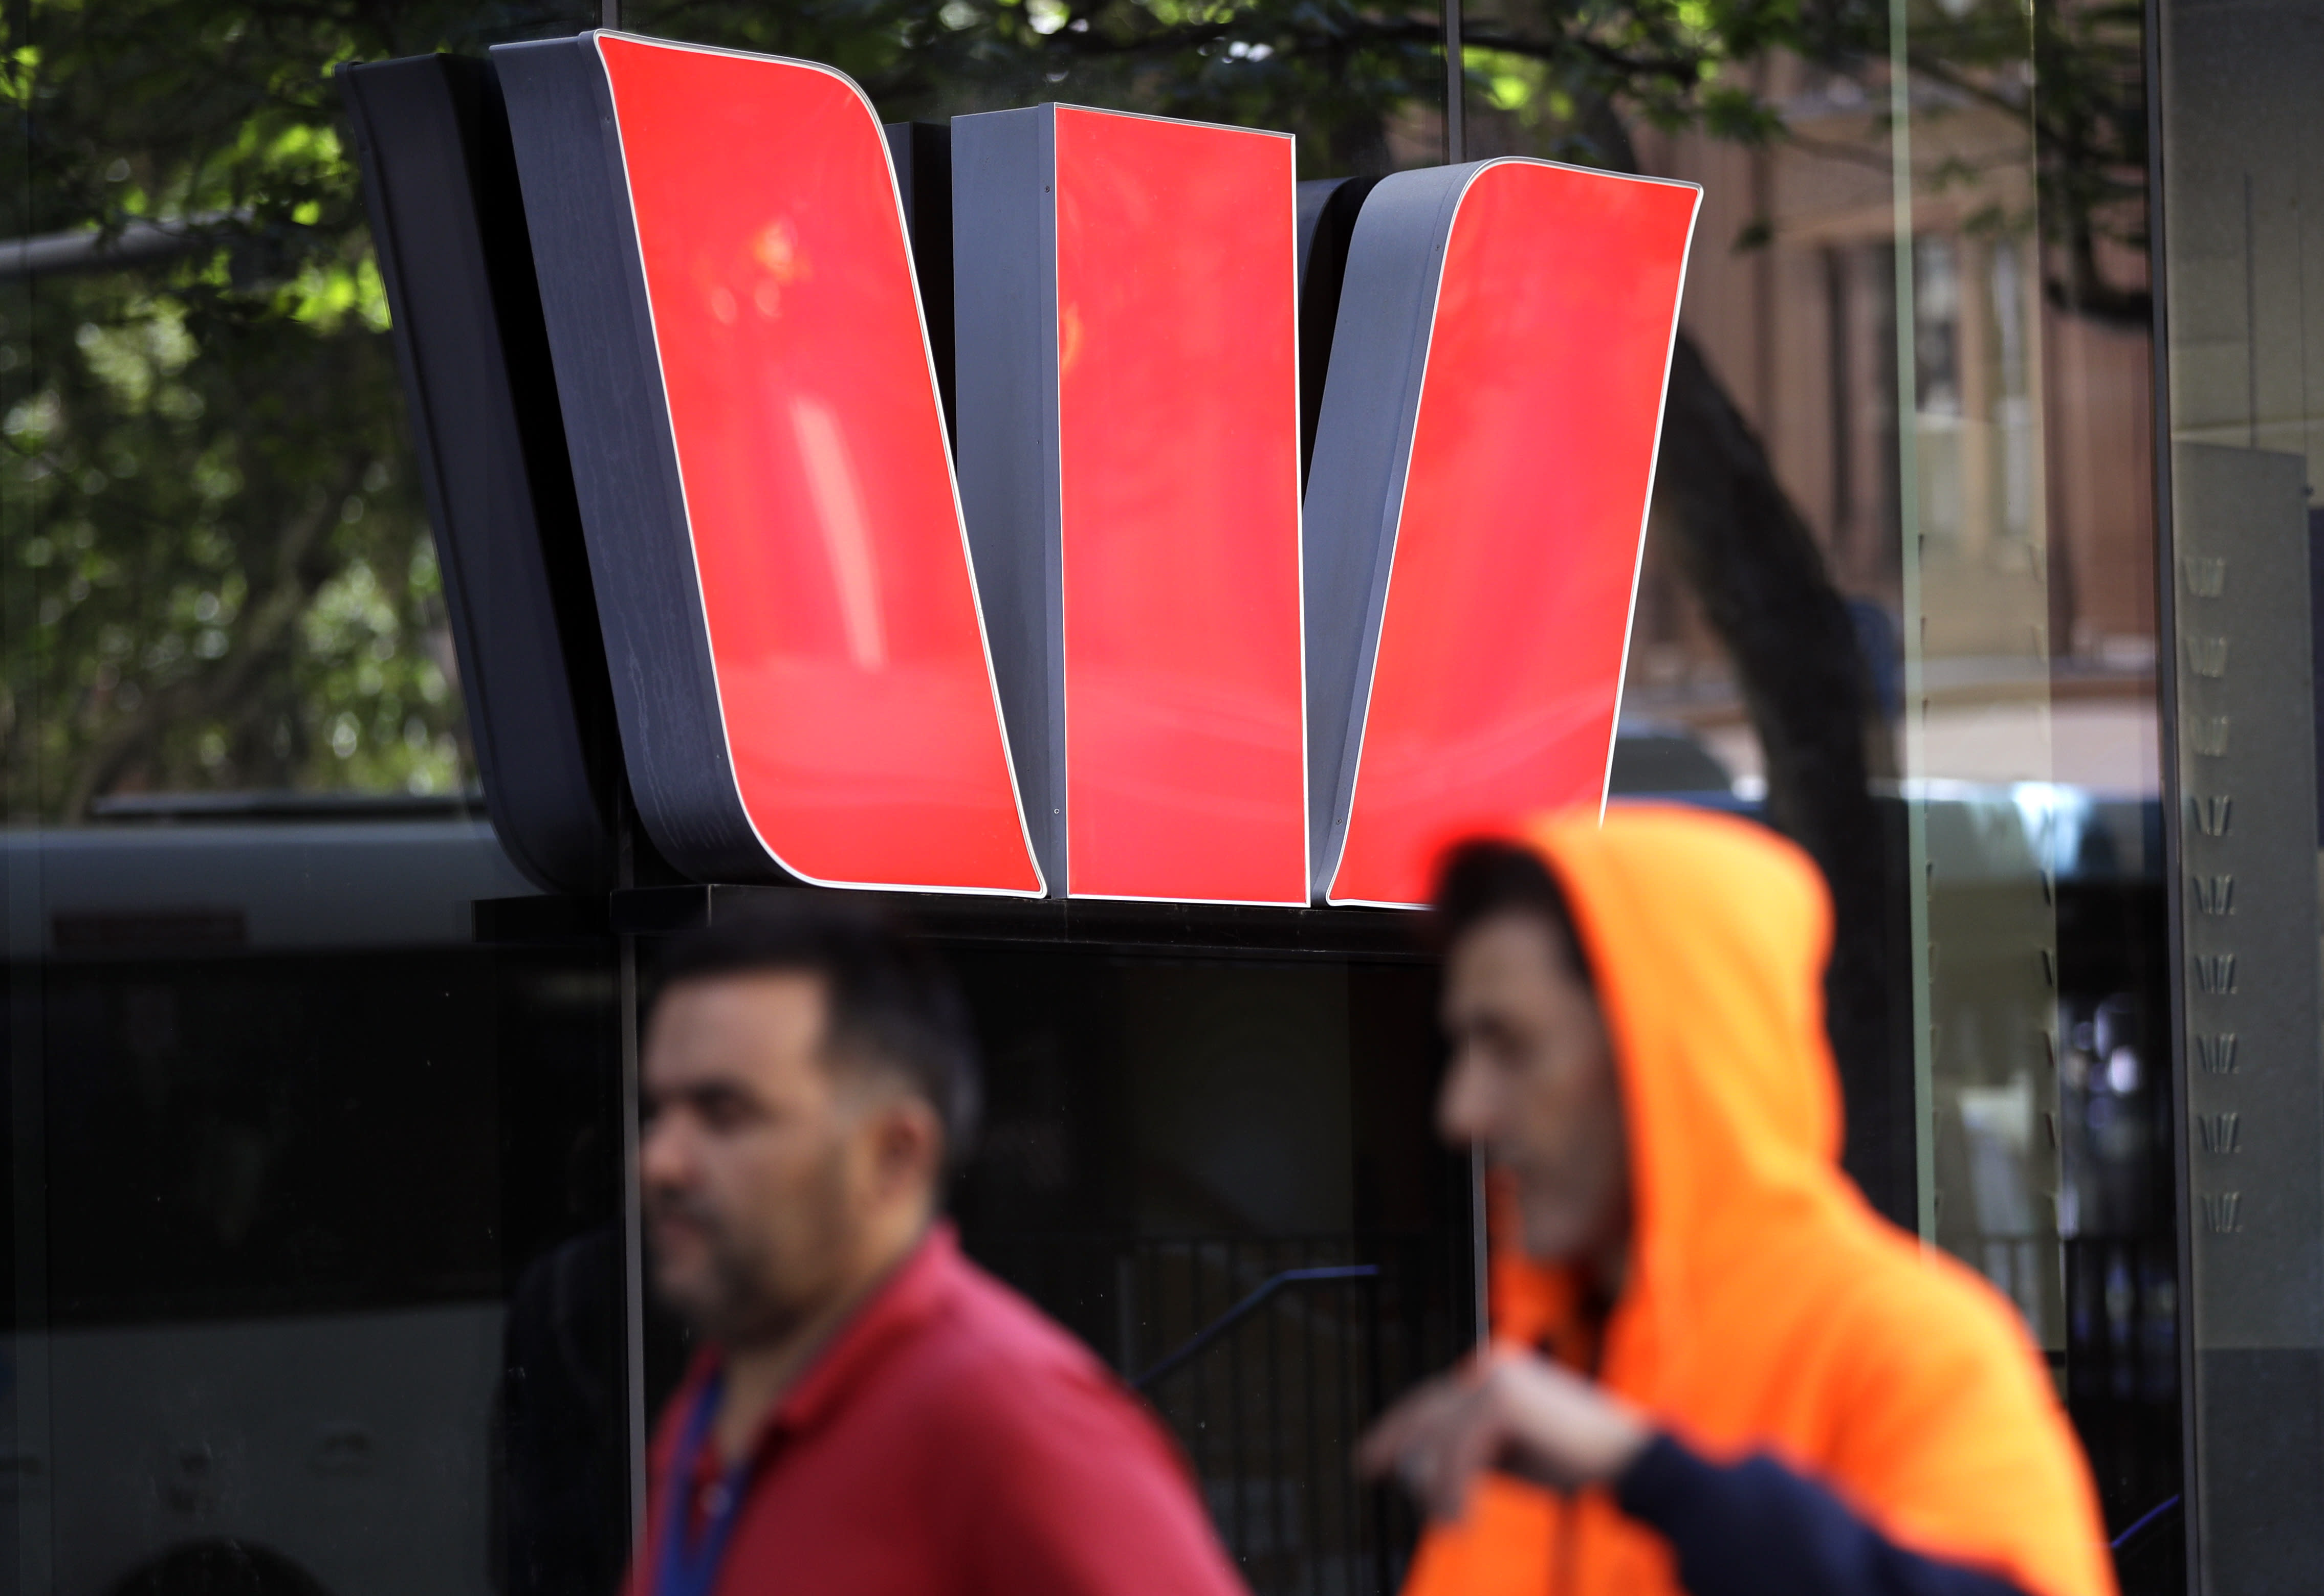 Two men walk past a Westpac bank branch in Sydney, Thursday, Sept. 24, 2020. Westpac, Australia's second-largest bank, agreed to pay a 1.3 billion Australian dollar ($919 million) fine for breaches of anti-money laundering and counterterrorism financing laws, the largest ever civil penalty in Australia, a financial crime regulator said. (AP Photo/Rick Rycroft)